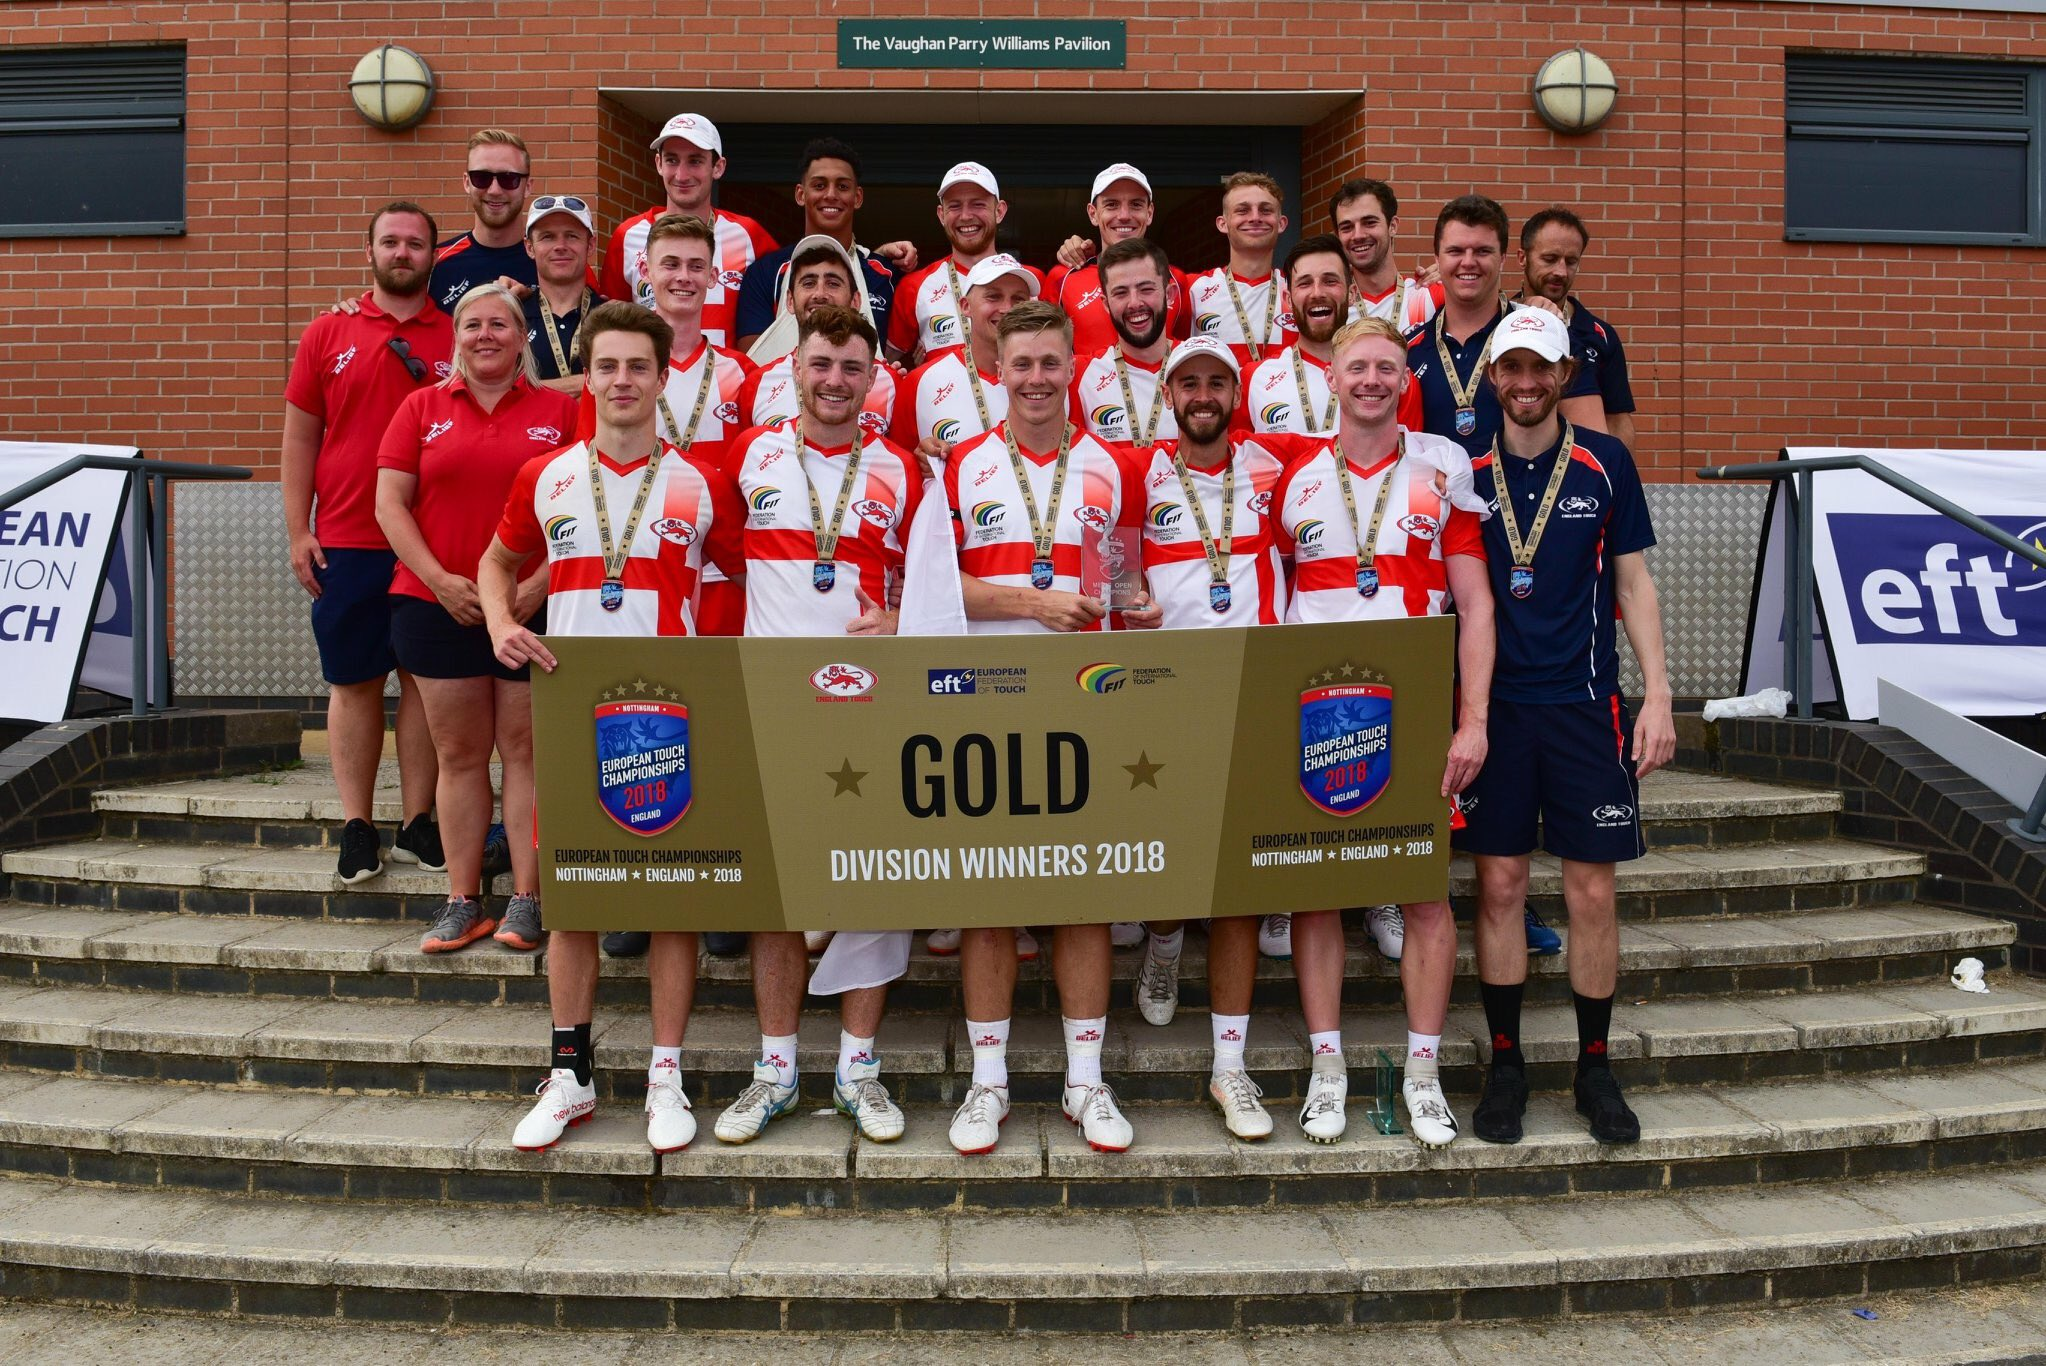 Touch rugby players enjoyed success representing England